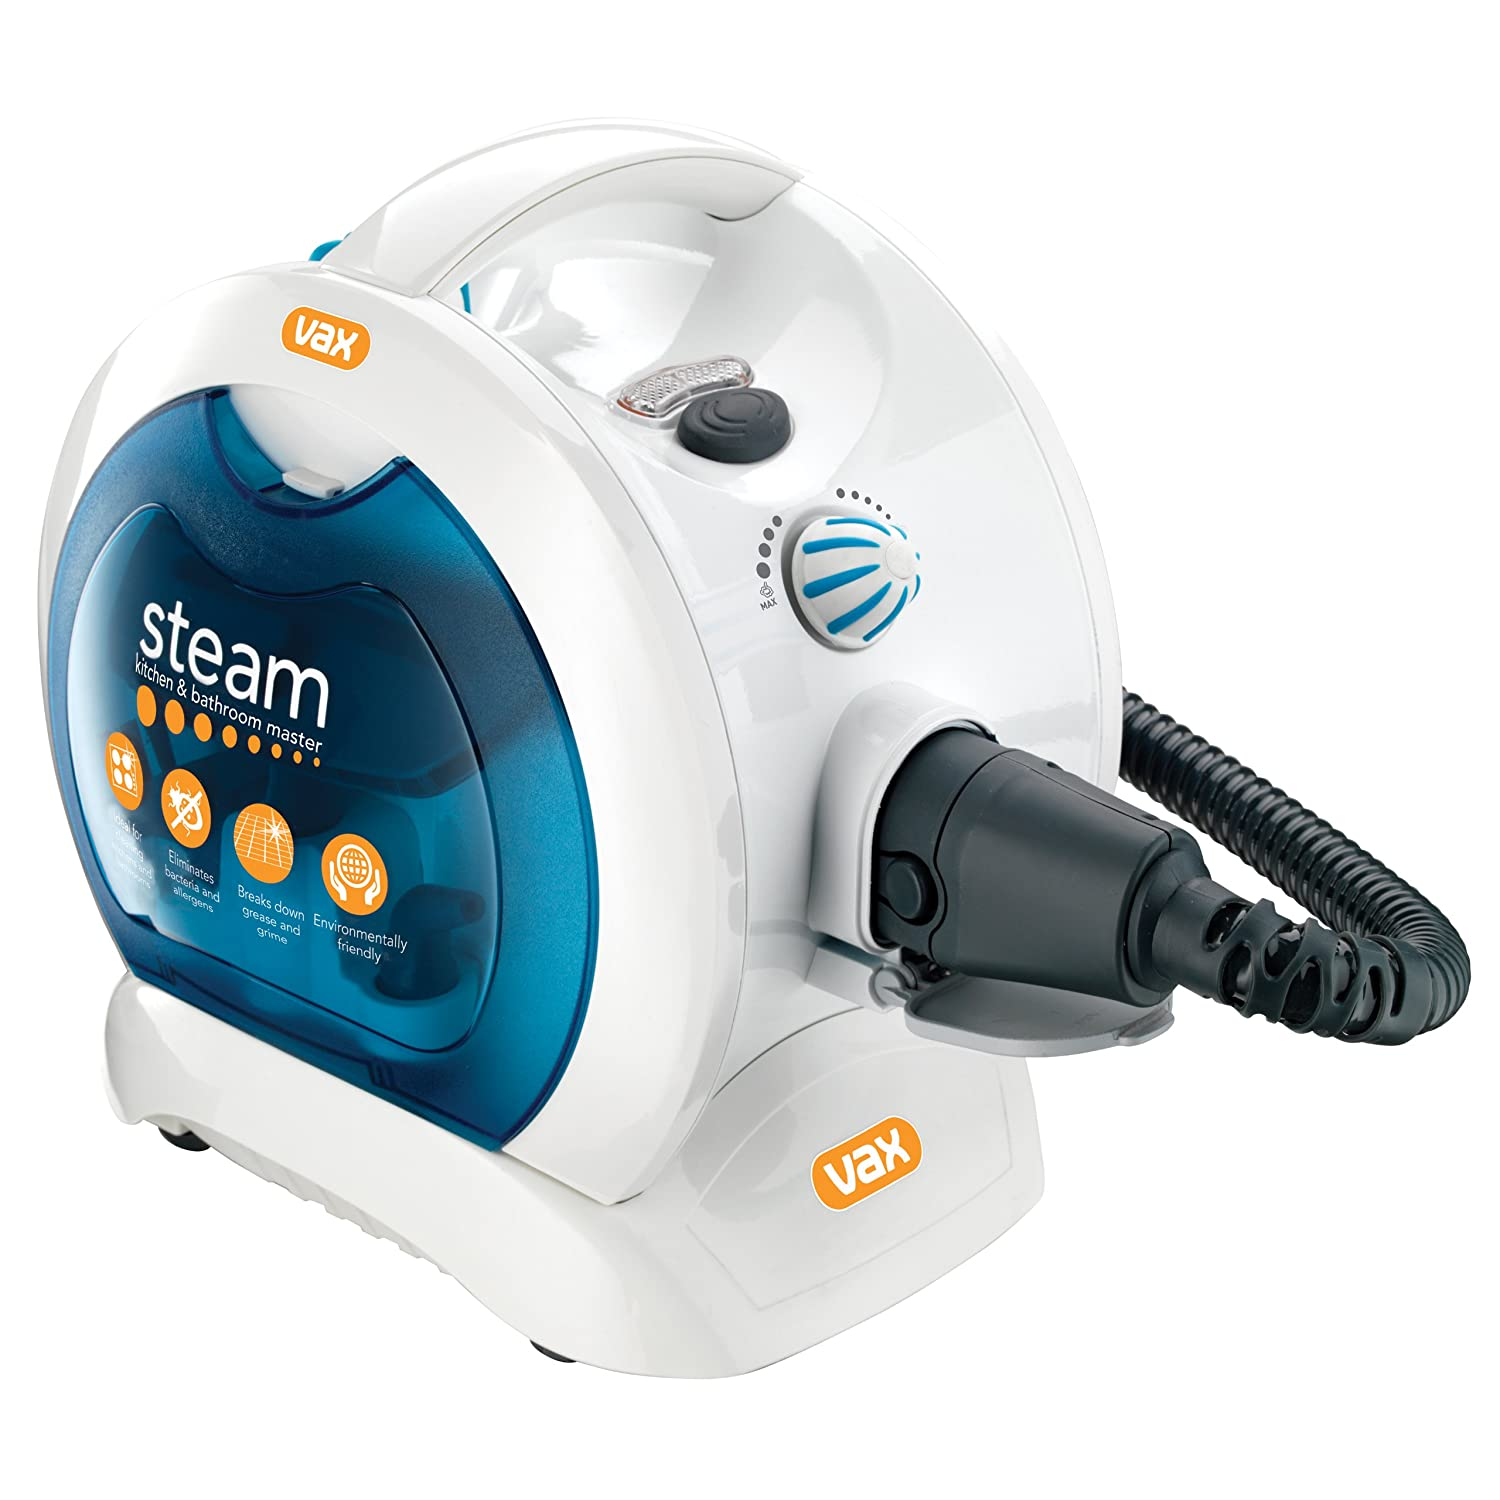 Vax S5 Compact Steam Cleaner Kitchen And Bathroom Master Delivered Amazon Hotukdeals